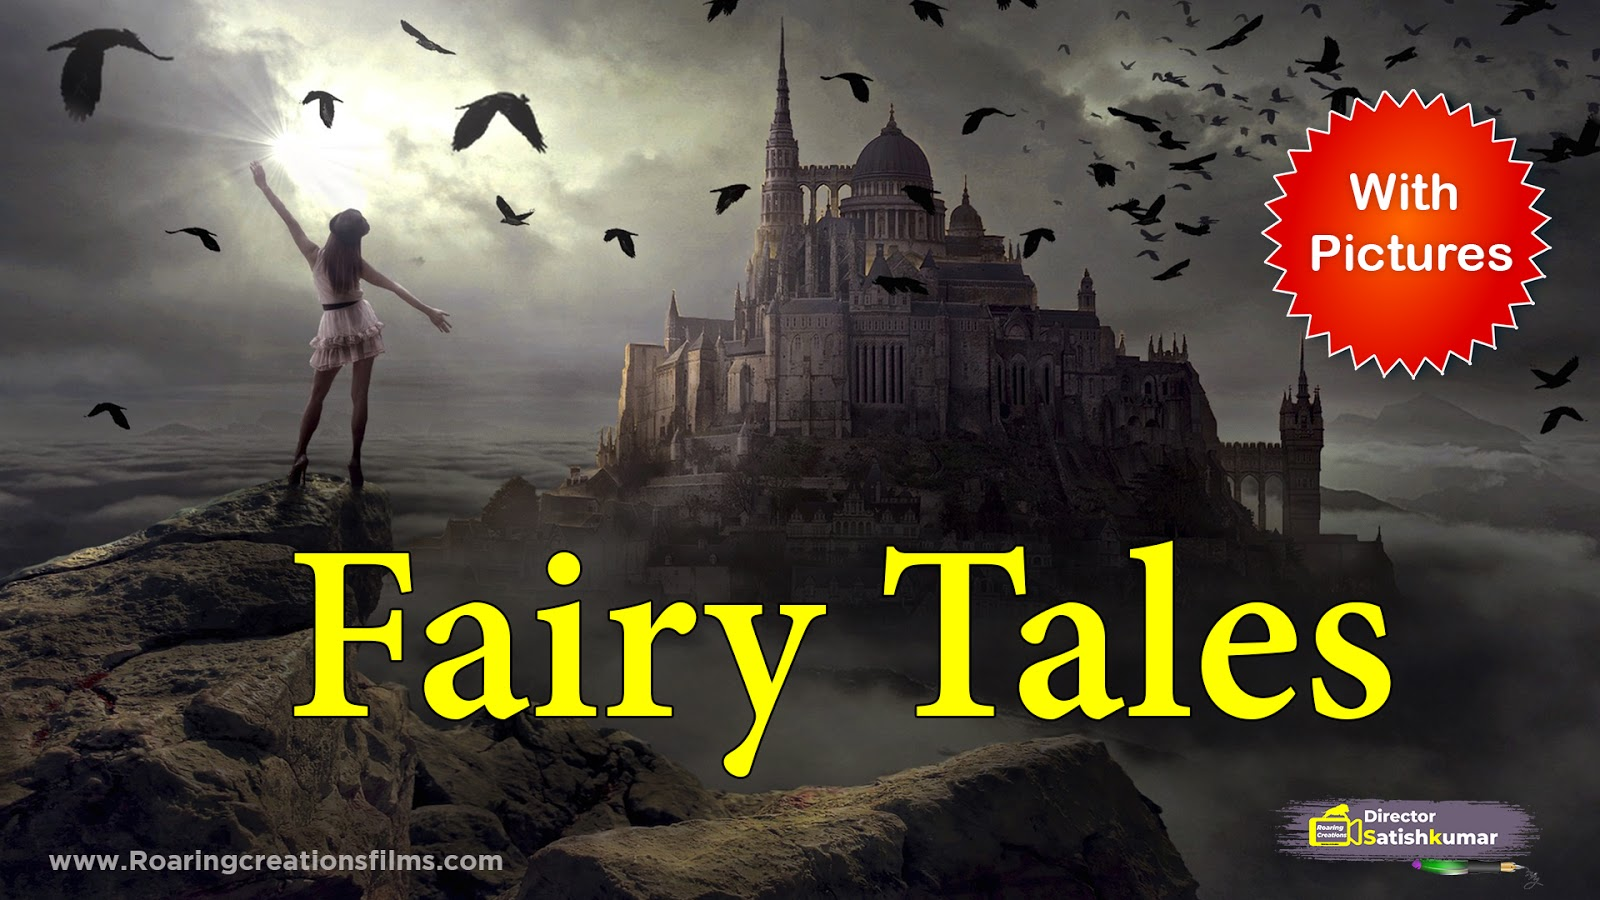 Fairy Tales in English - Fictional Stories in English